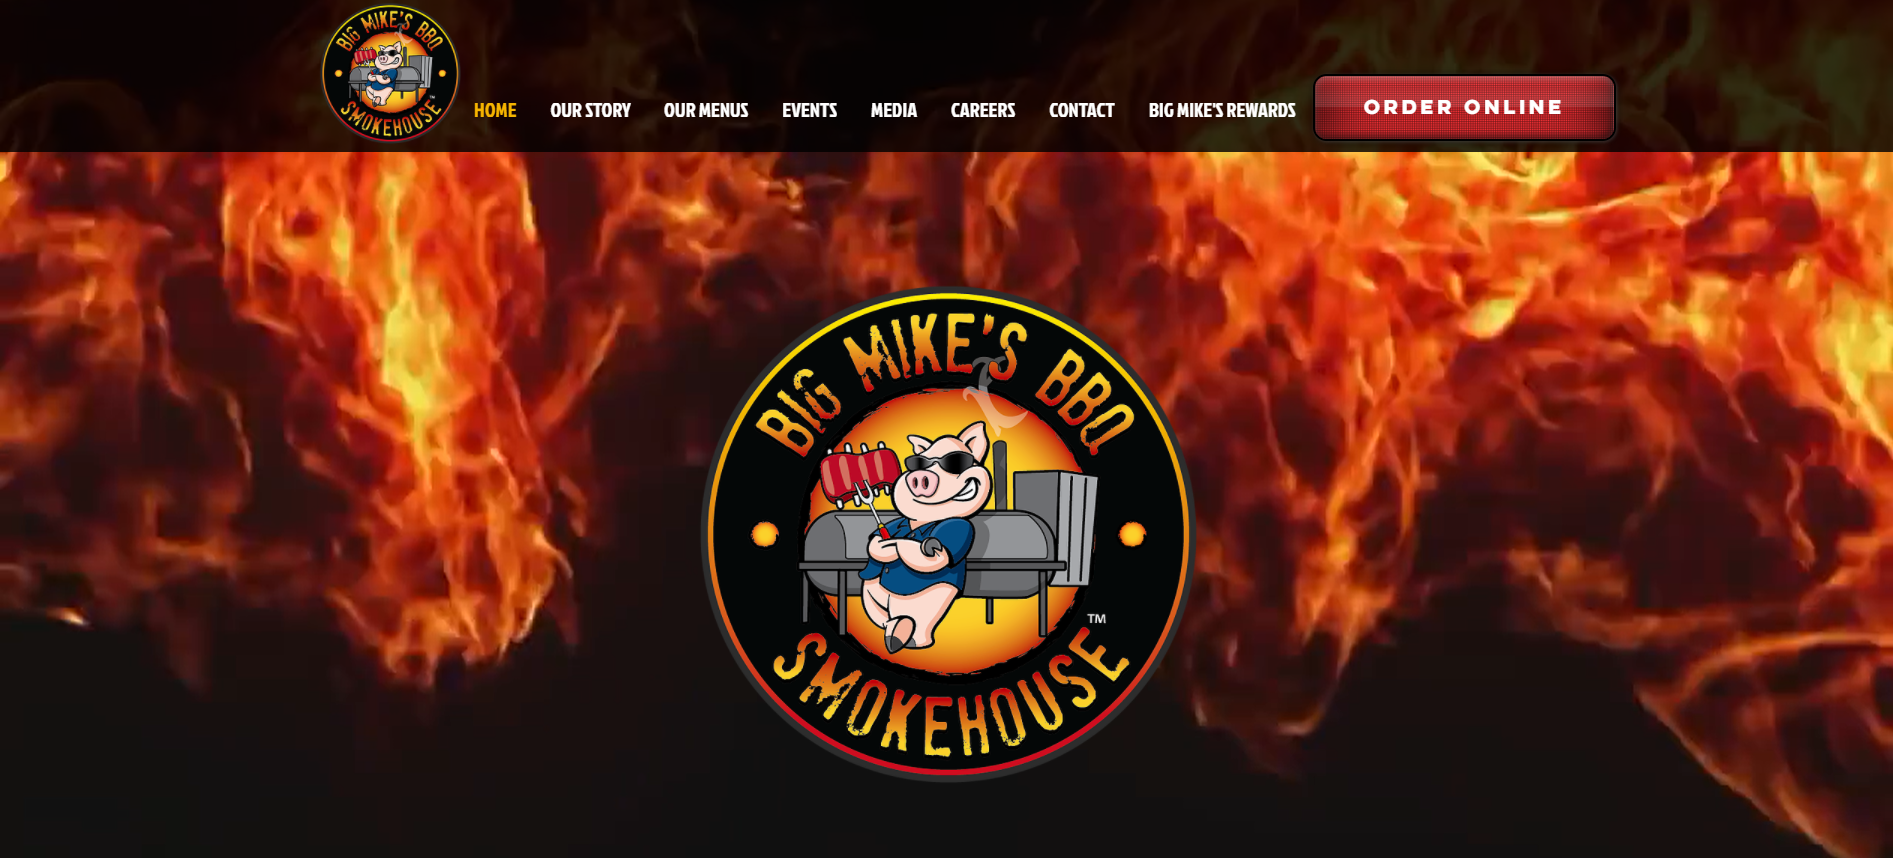 Big Mikes website large